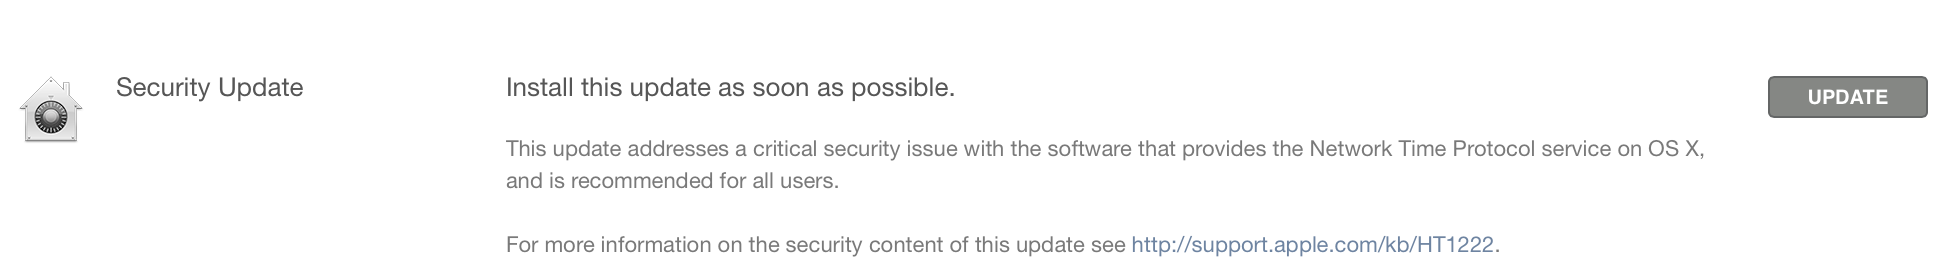 Apple OS X Security update